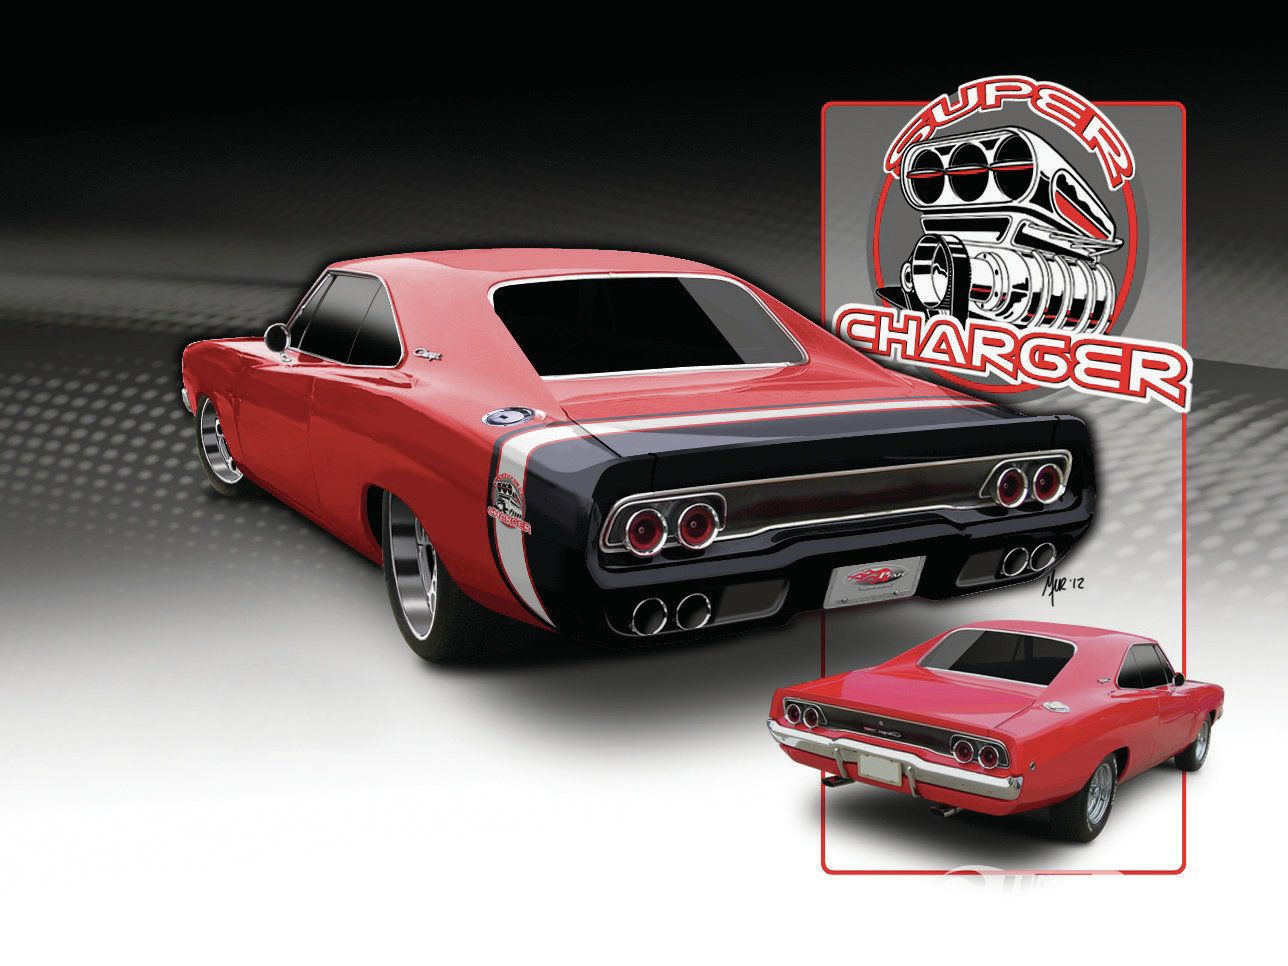 1968 Dodge Charger | The Most Iconic Muscle Cars 1968 Dodge ...